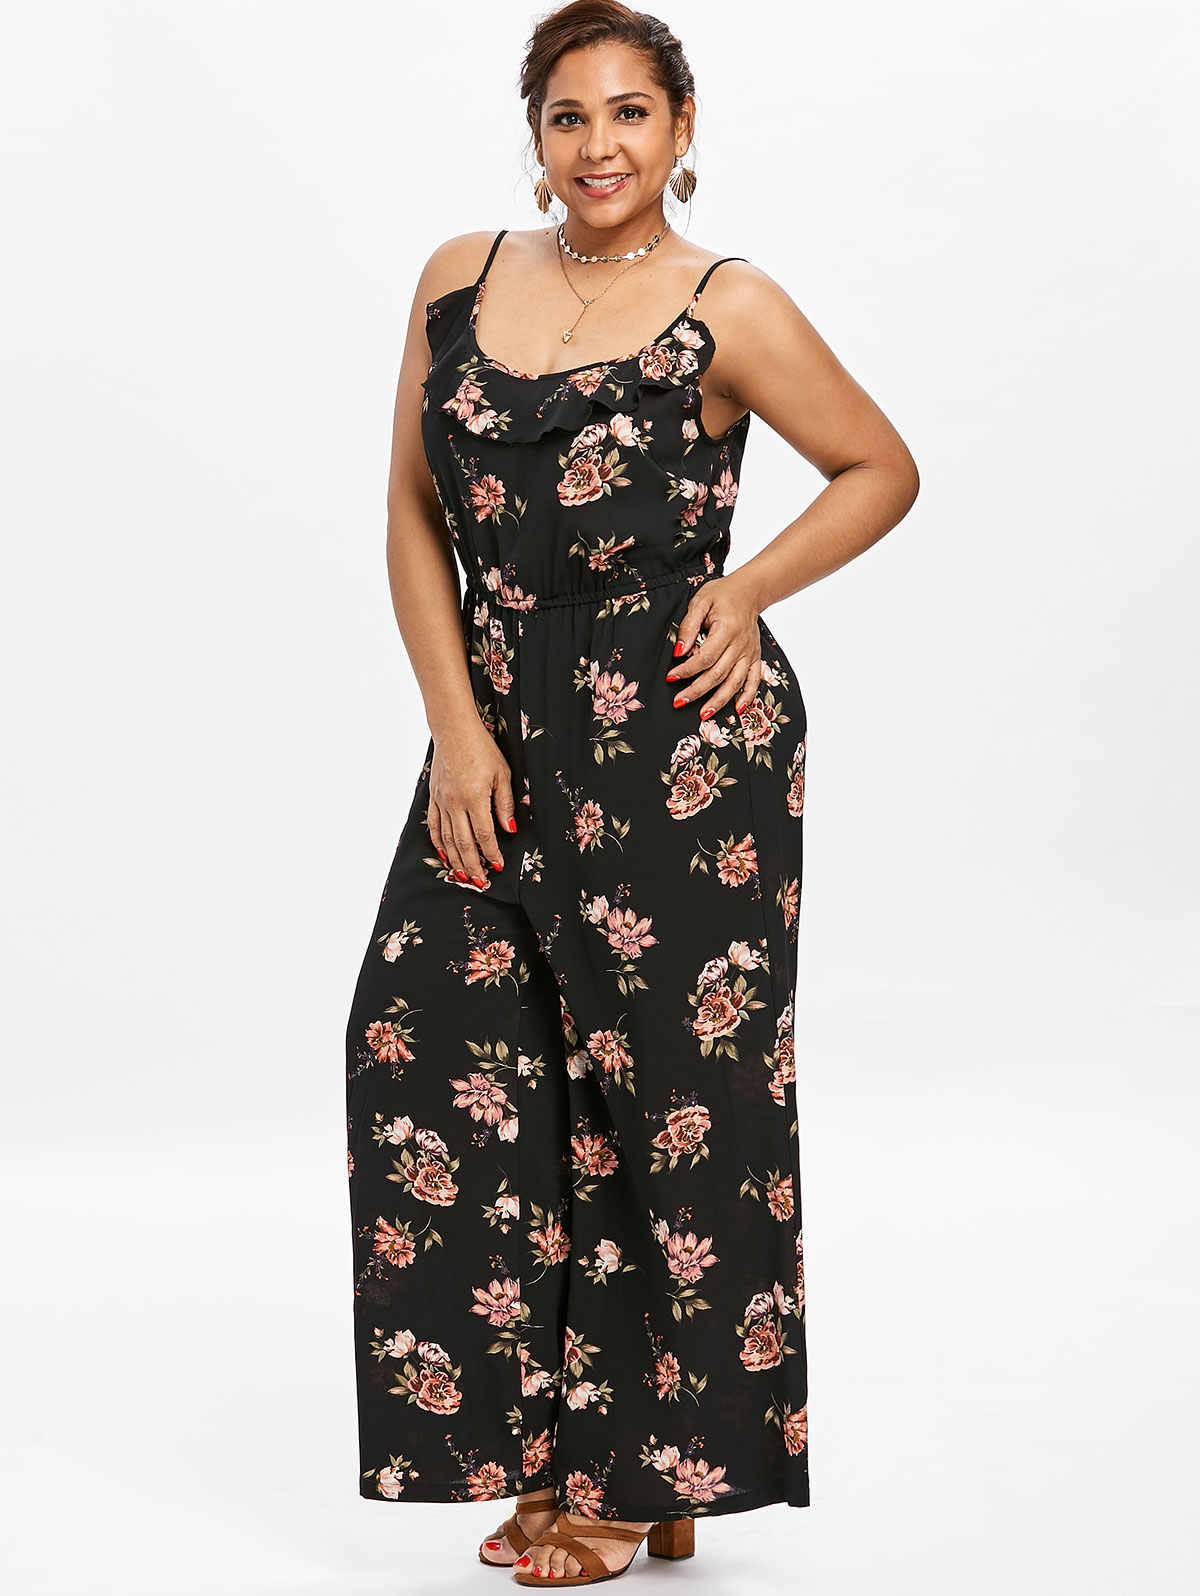 ... Gamiss Plus Size Flower Ruffles Wide Leg Jumpsuit 2018 Summer Cami  Strap Casual Straight Jumpsuits Wide ... e61968681891